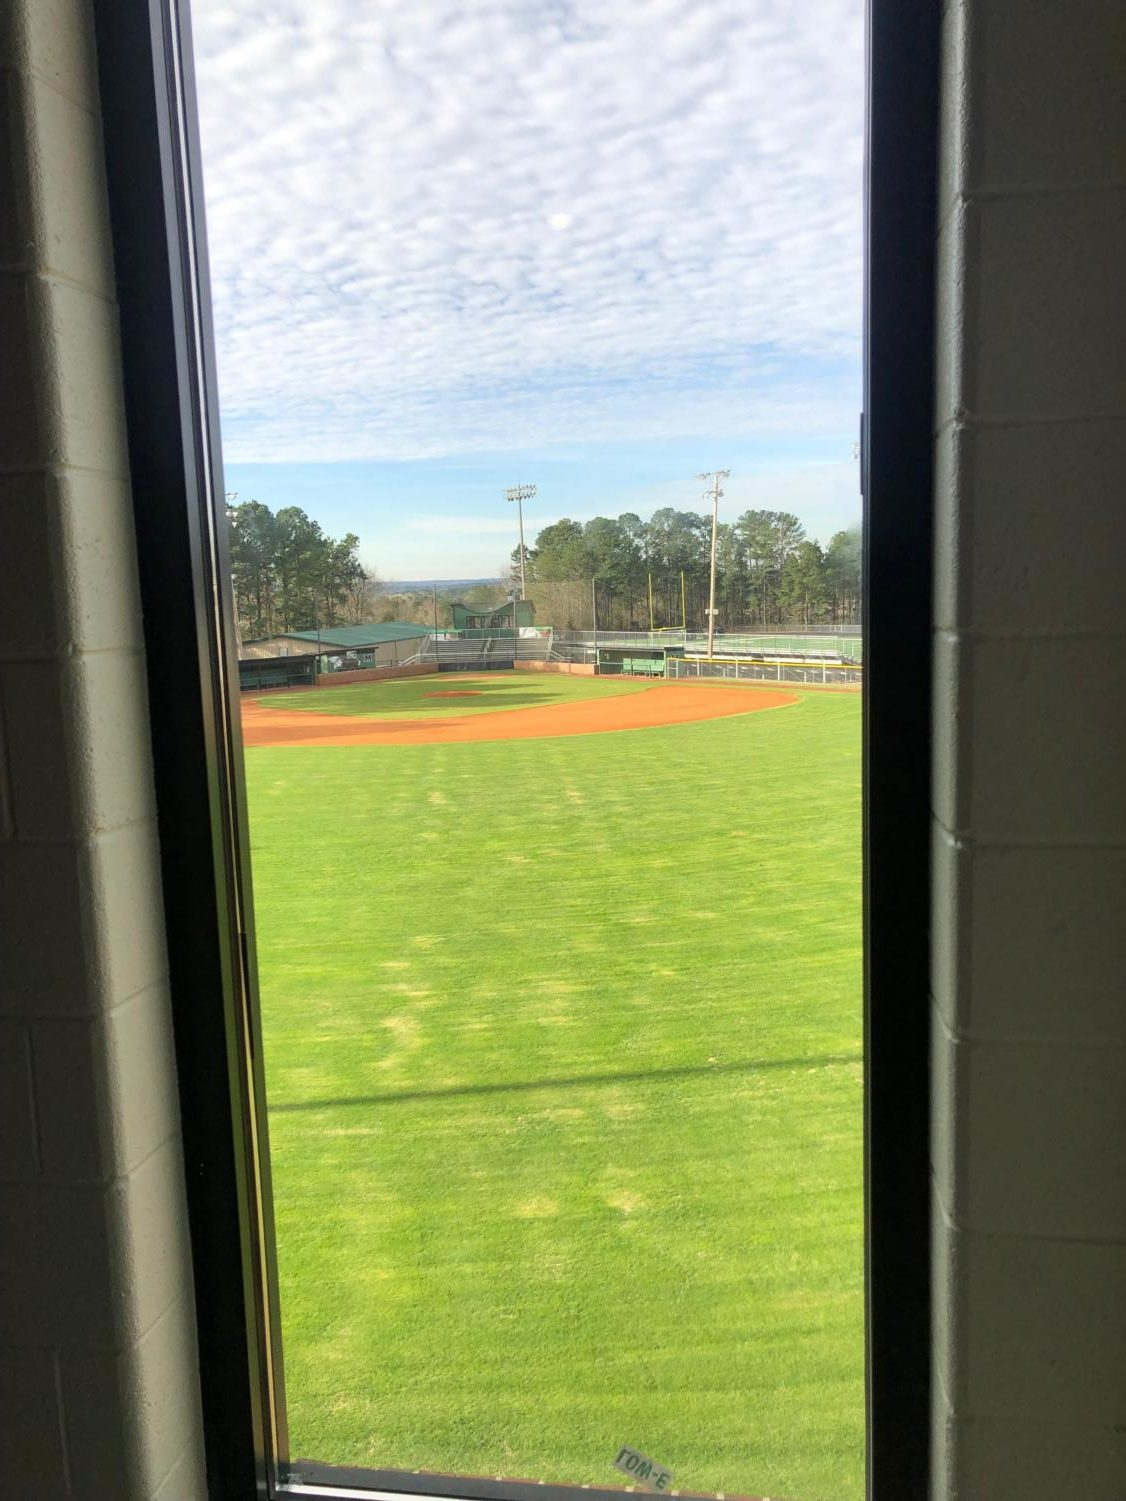 View+from+one+of+the+classrooms+facing+the+baseball+field